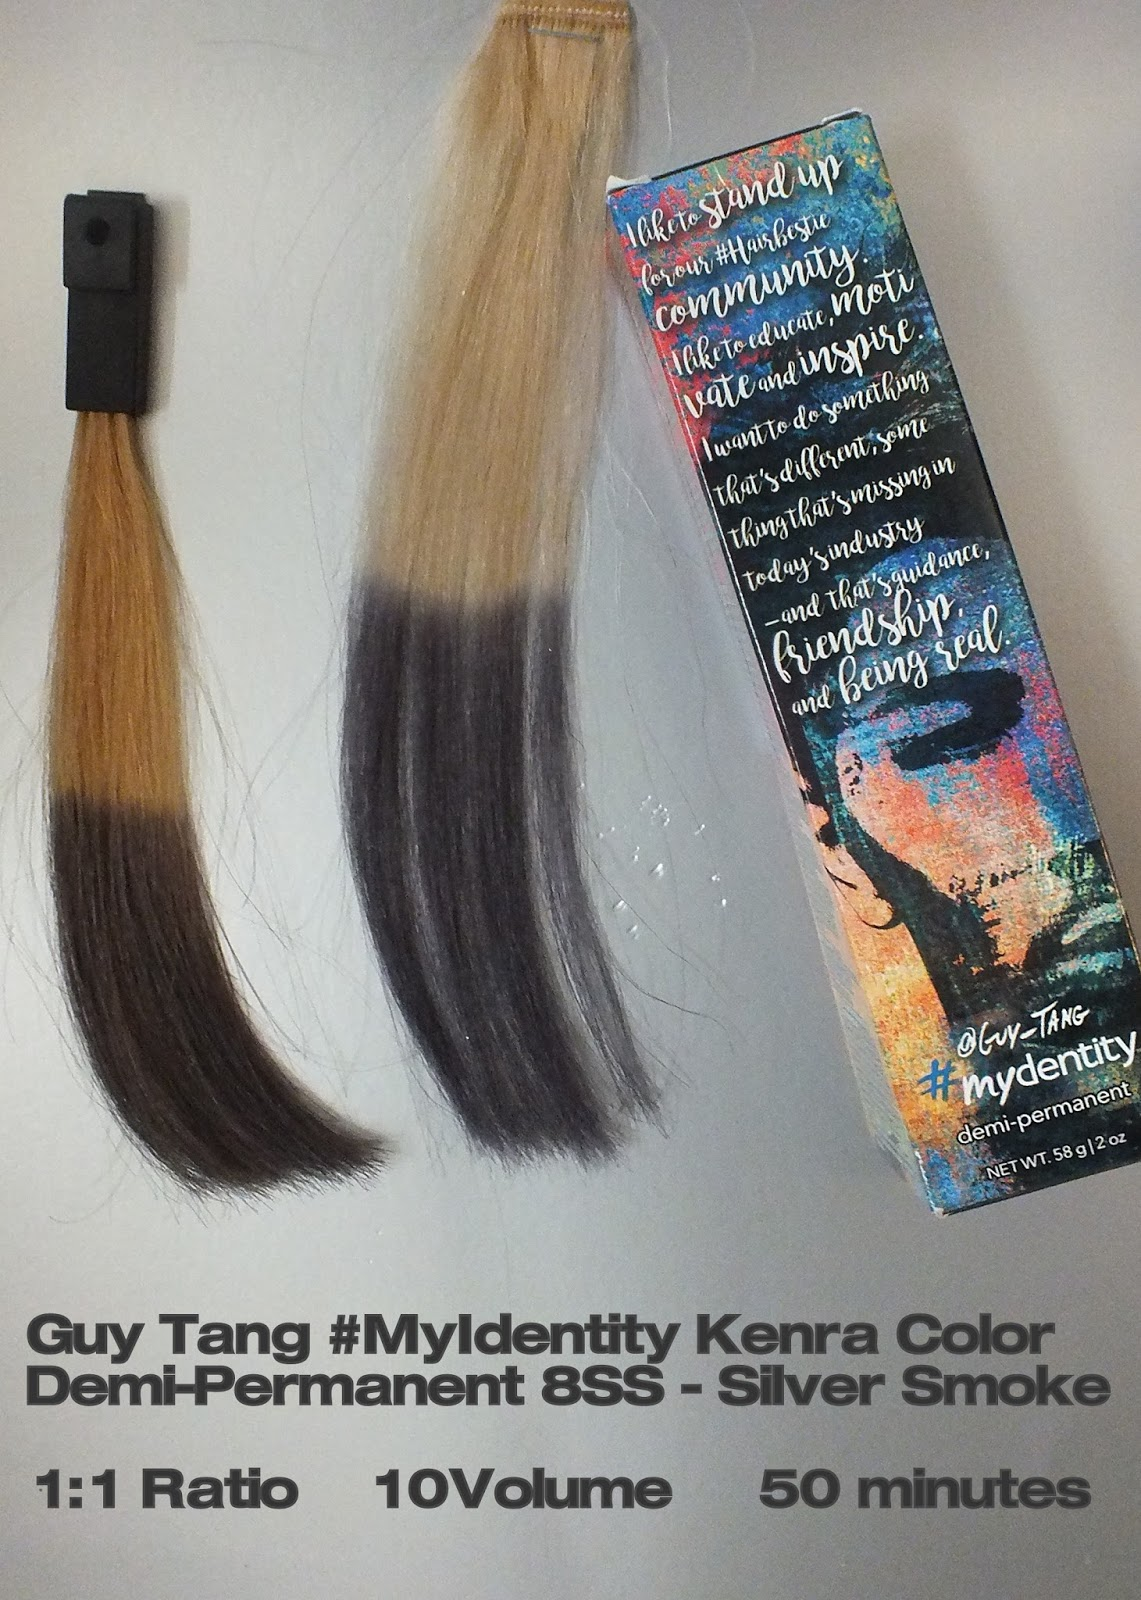 The New Kenra Hair Colors Amber Rose Dusty Lavender Silver